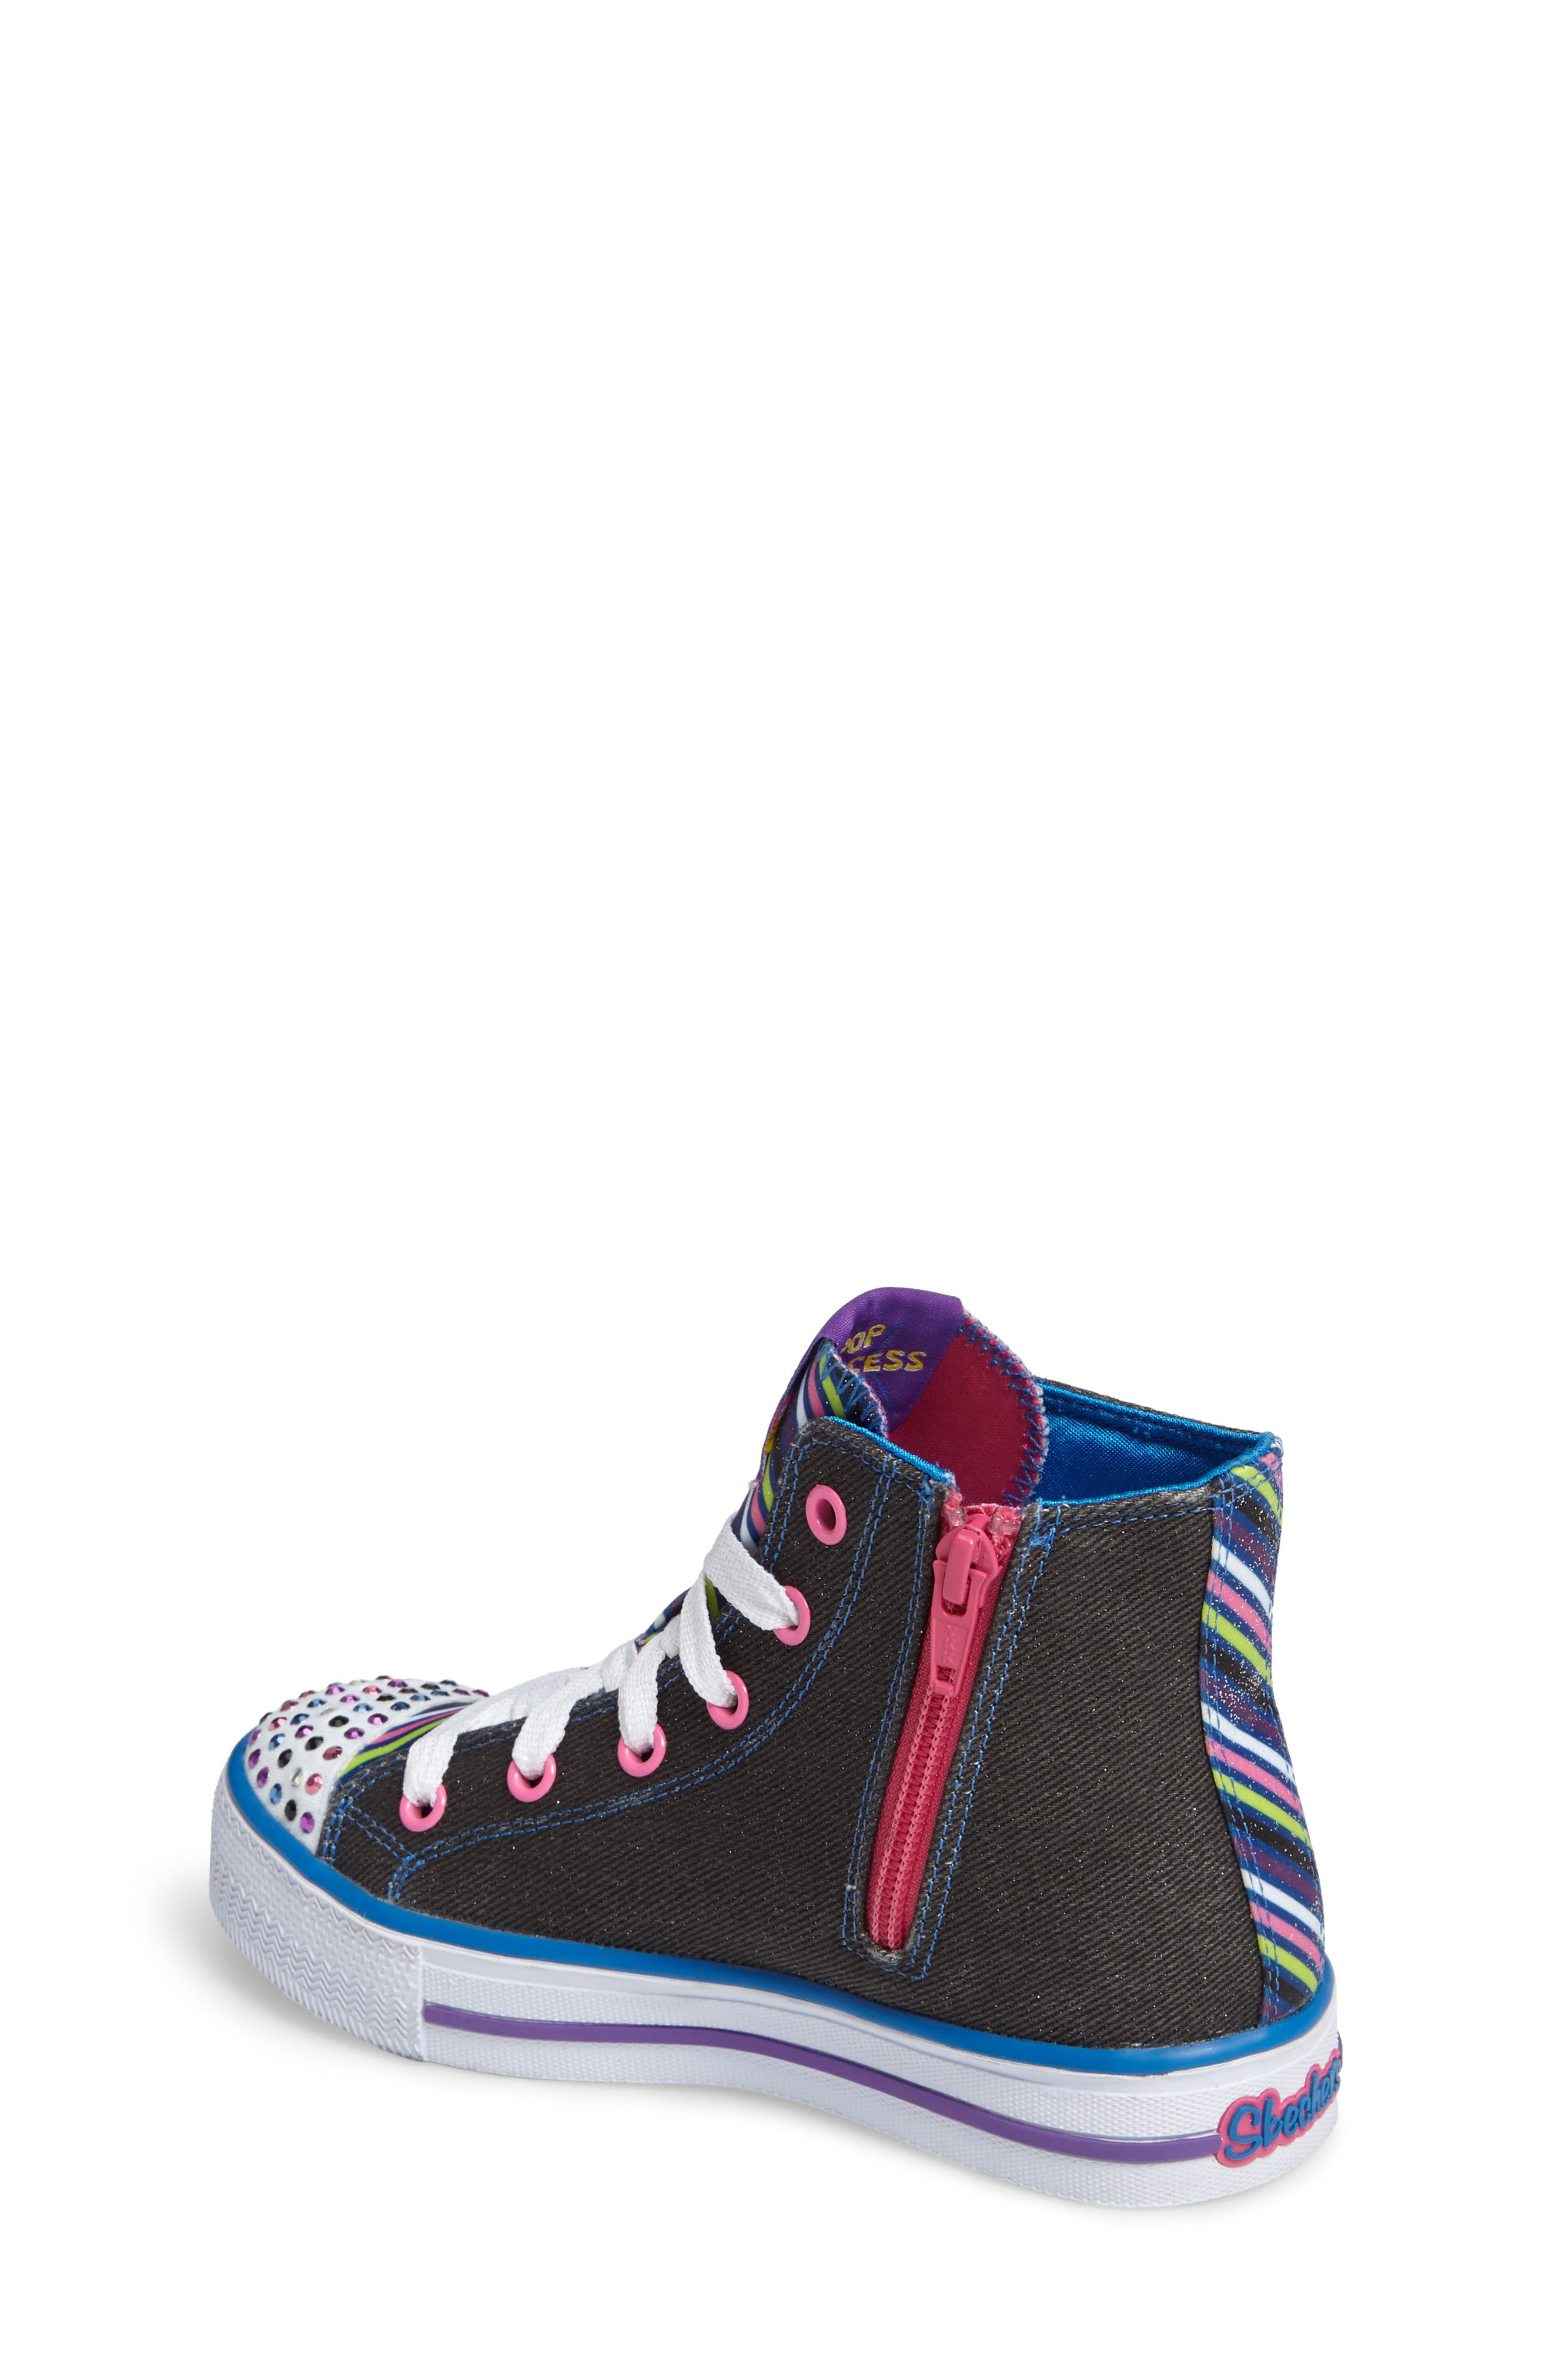 Twinkle Toes Shuffles Light-Up High Top Sneaker,                             Alternate thumbnail 2, color,                             001